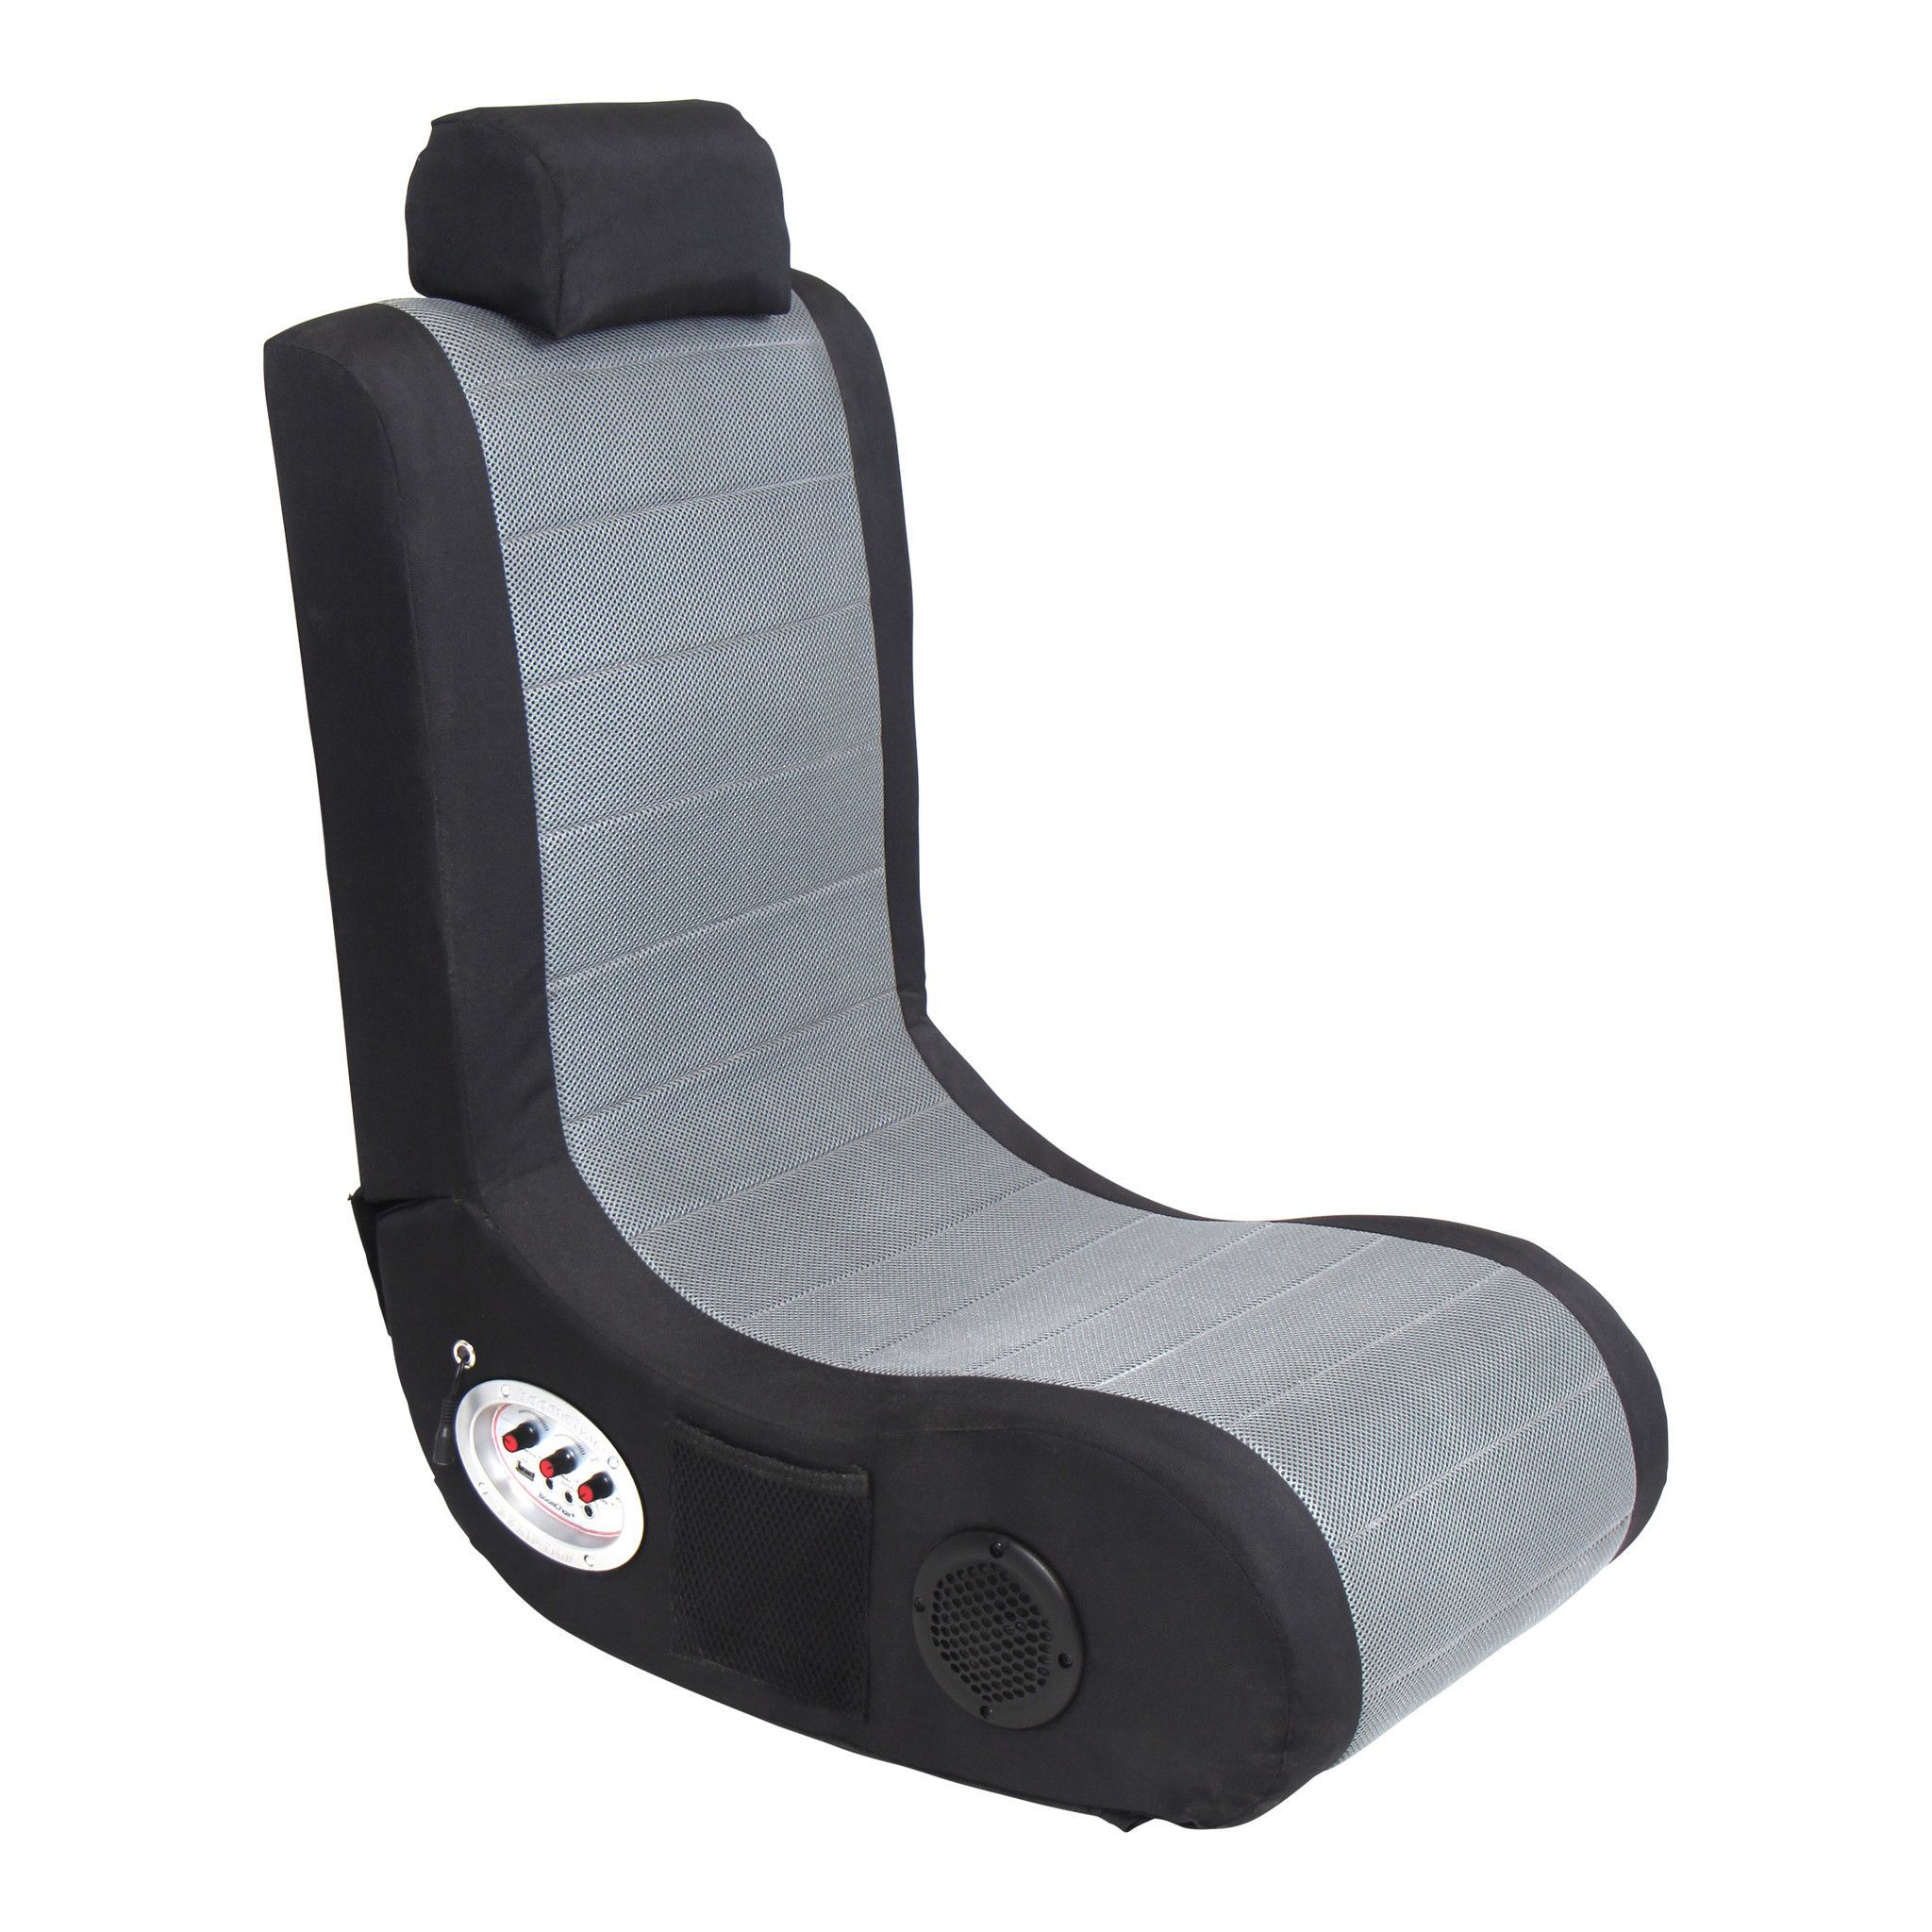 Lumisource Gamer BoomChair Gamer, Video gamer, Video games